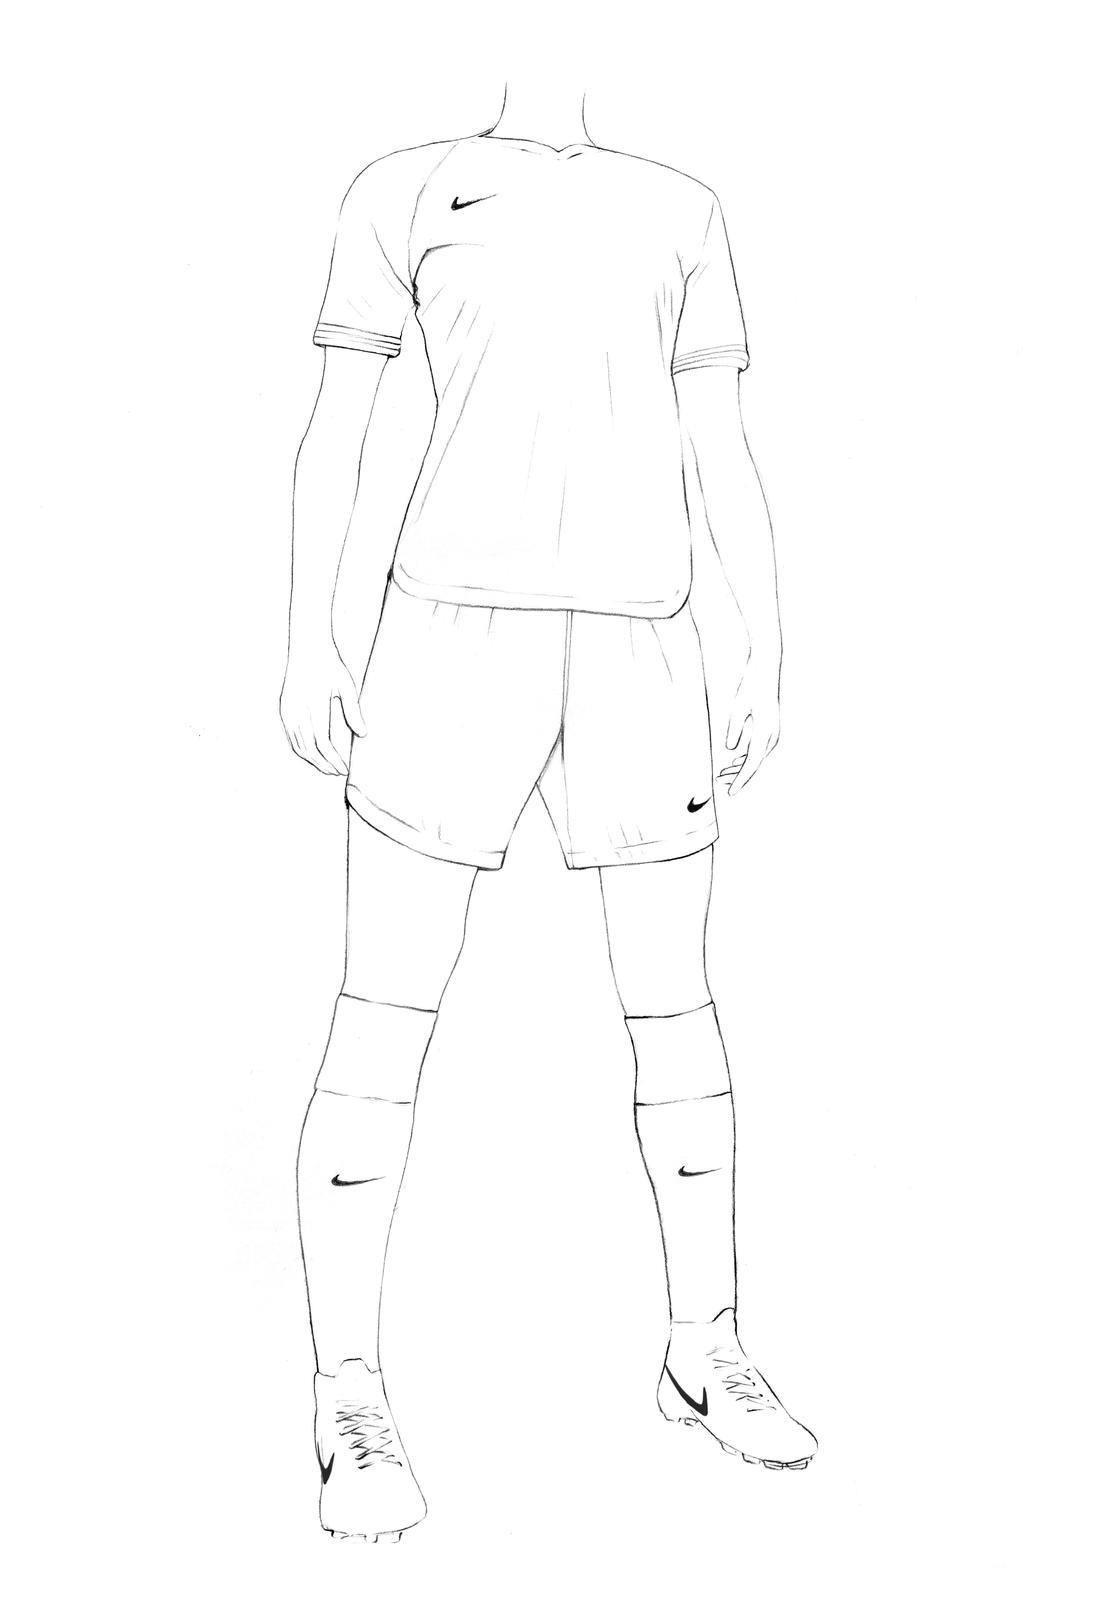 The 2019 Nike women's football kit is the result of three years of physiological testing and perception research. Illustration by Caroline Andrieu. Nike